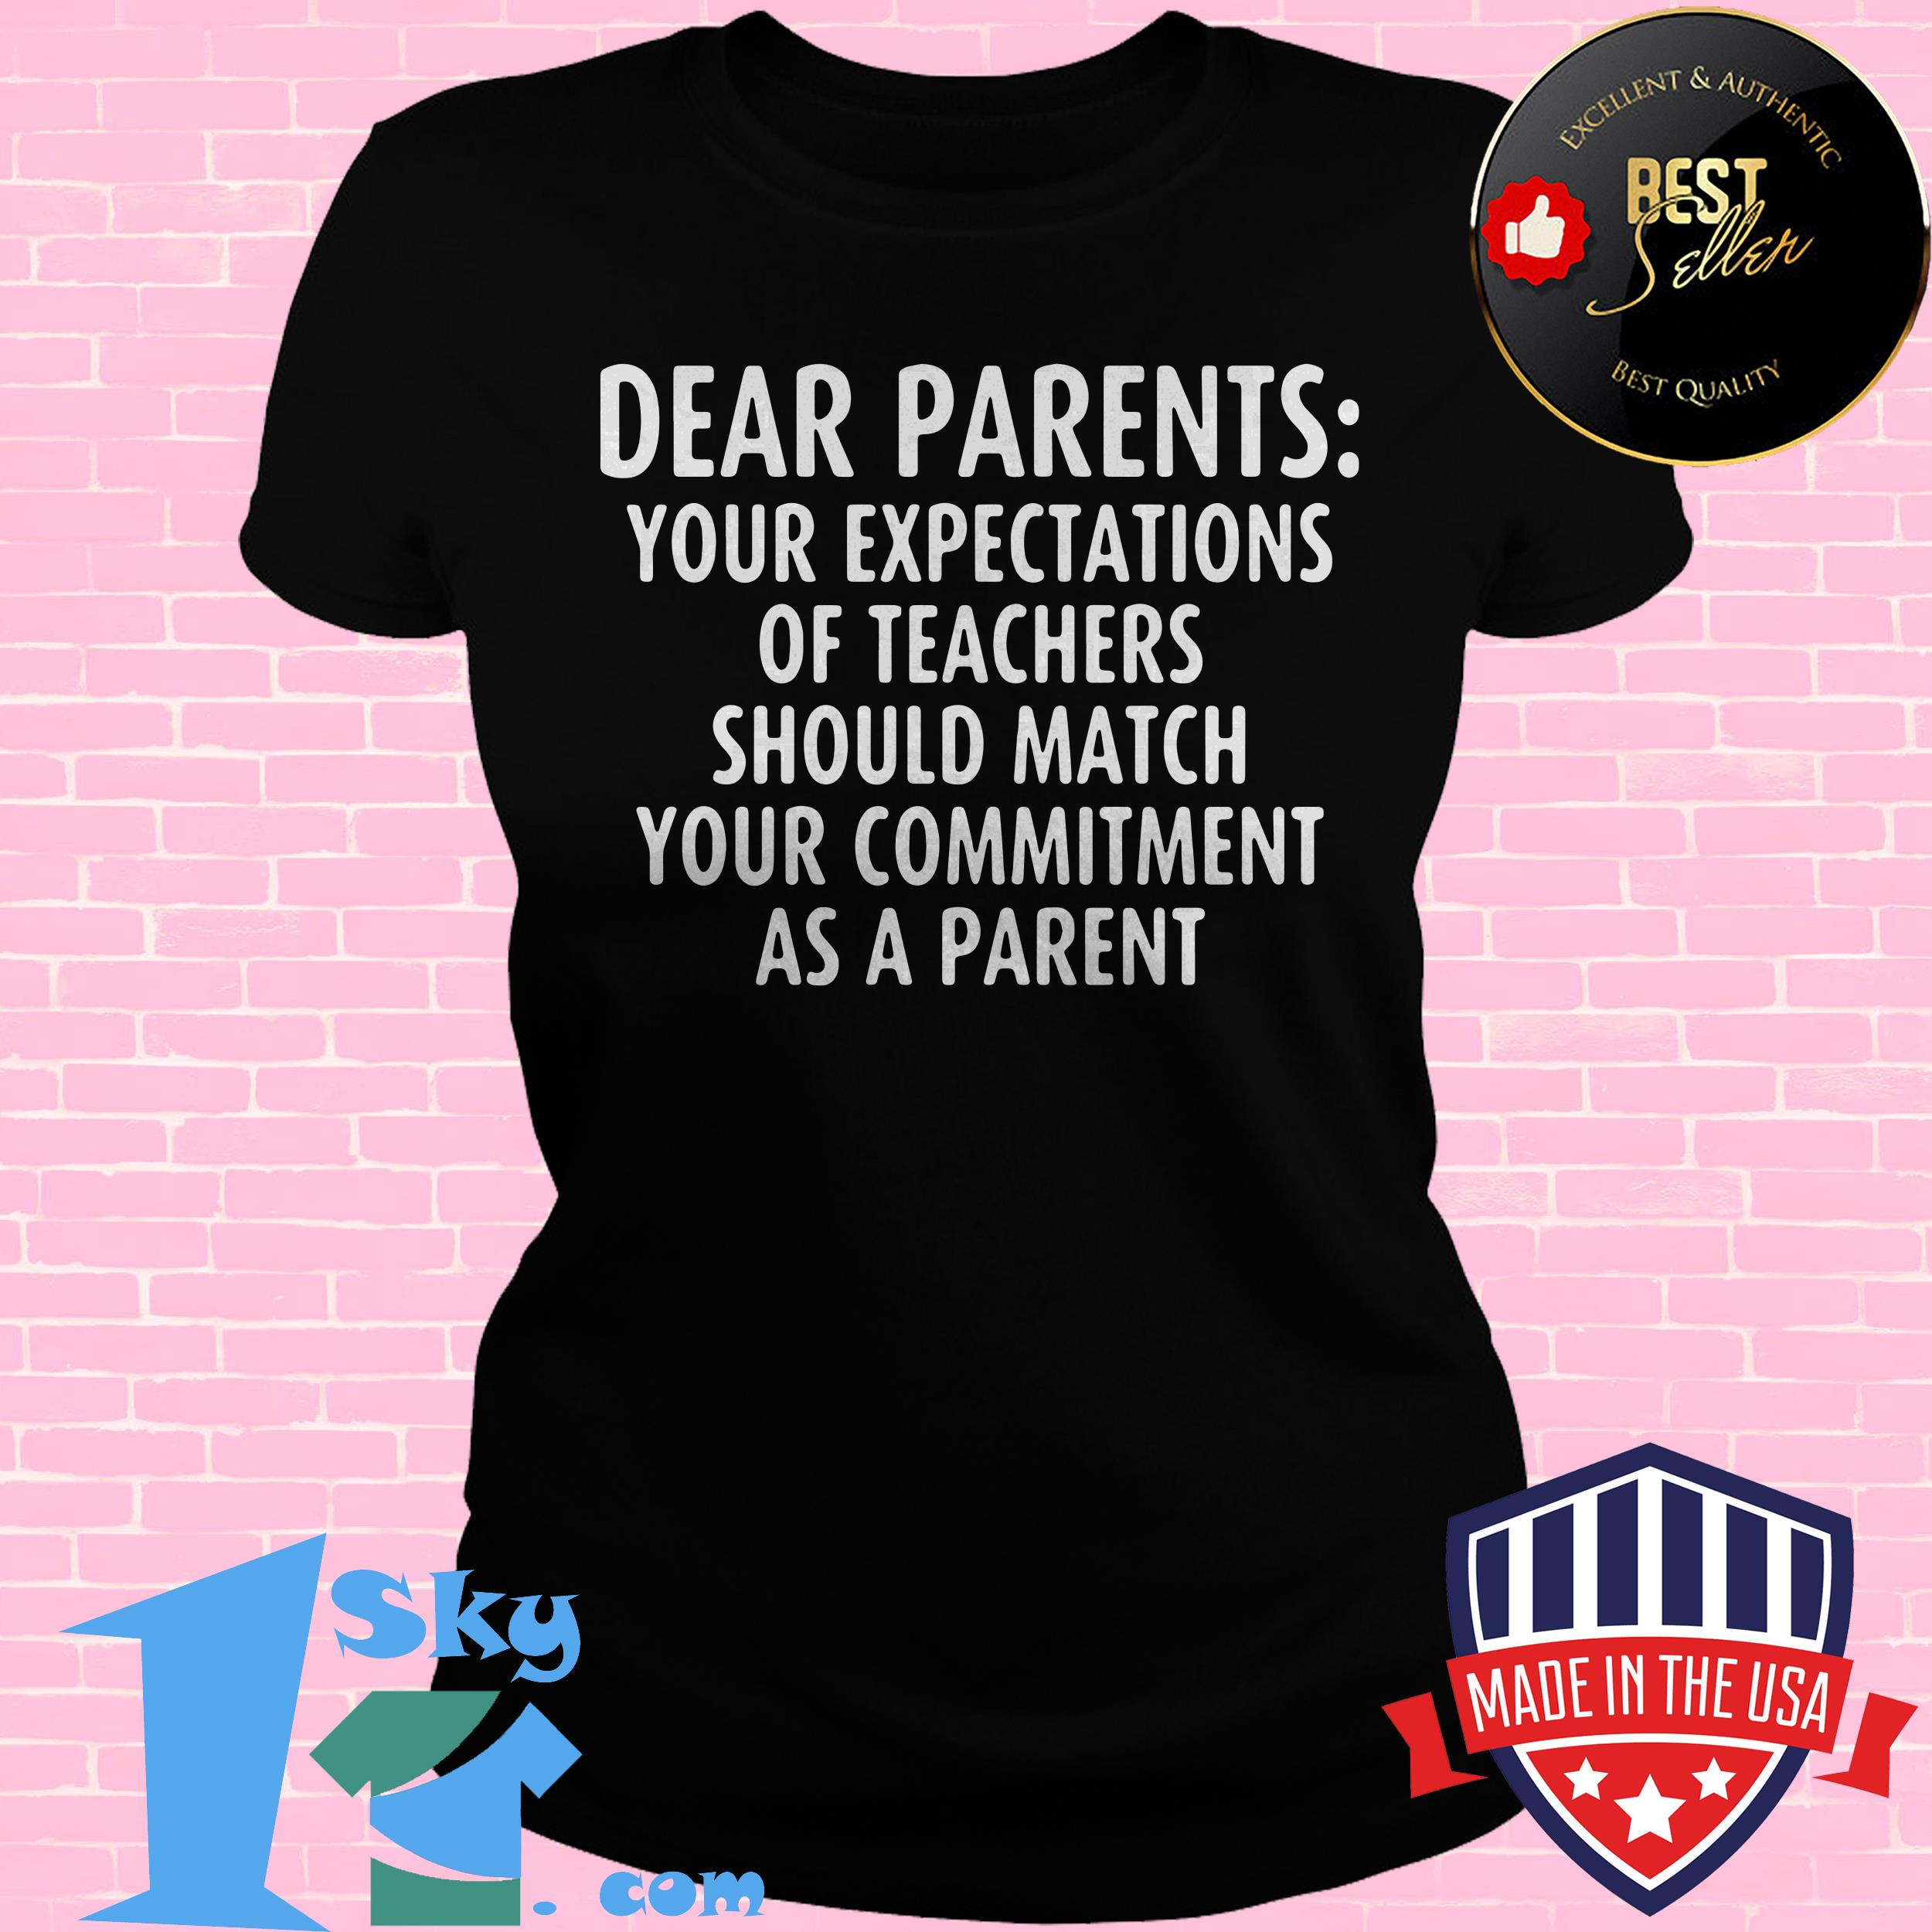 dear parents your expectations of teachers should match your commitment as a parent ladies tee - Dear Parents Your Expectations Of Teachers Should Match Your Commitment As A Parent shirt